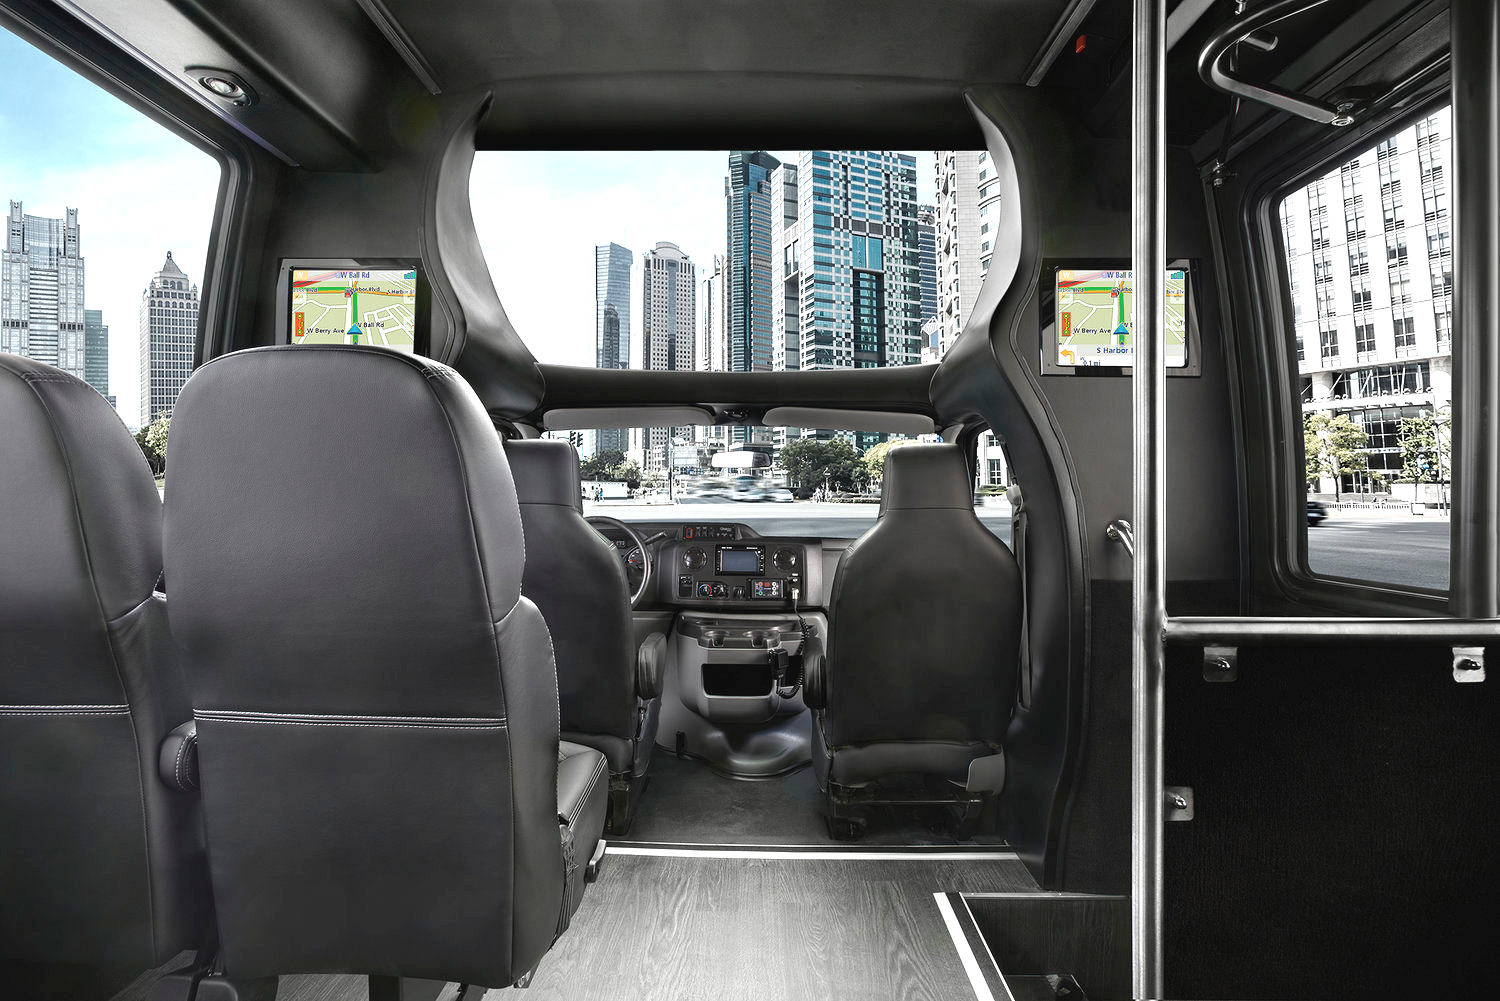 Shuttle Bus Group Transportation Services Minneapolis MN / St Paul Minnesota Front Facing Interior Seating